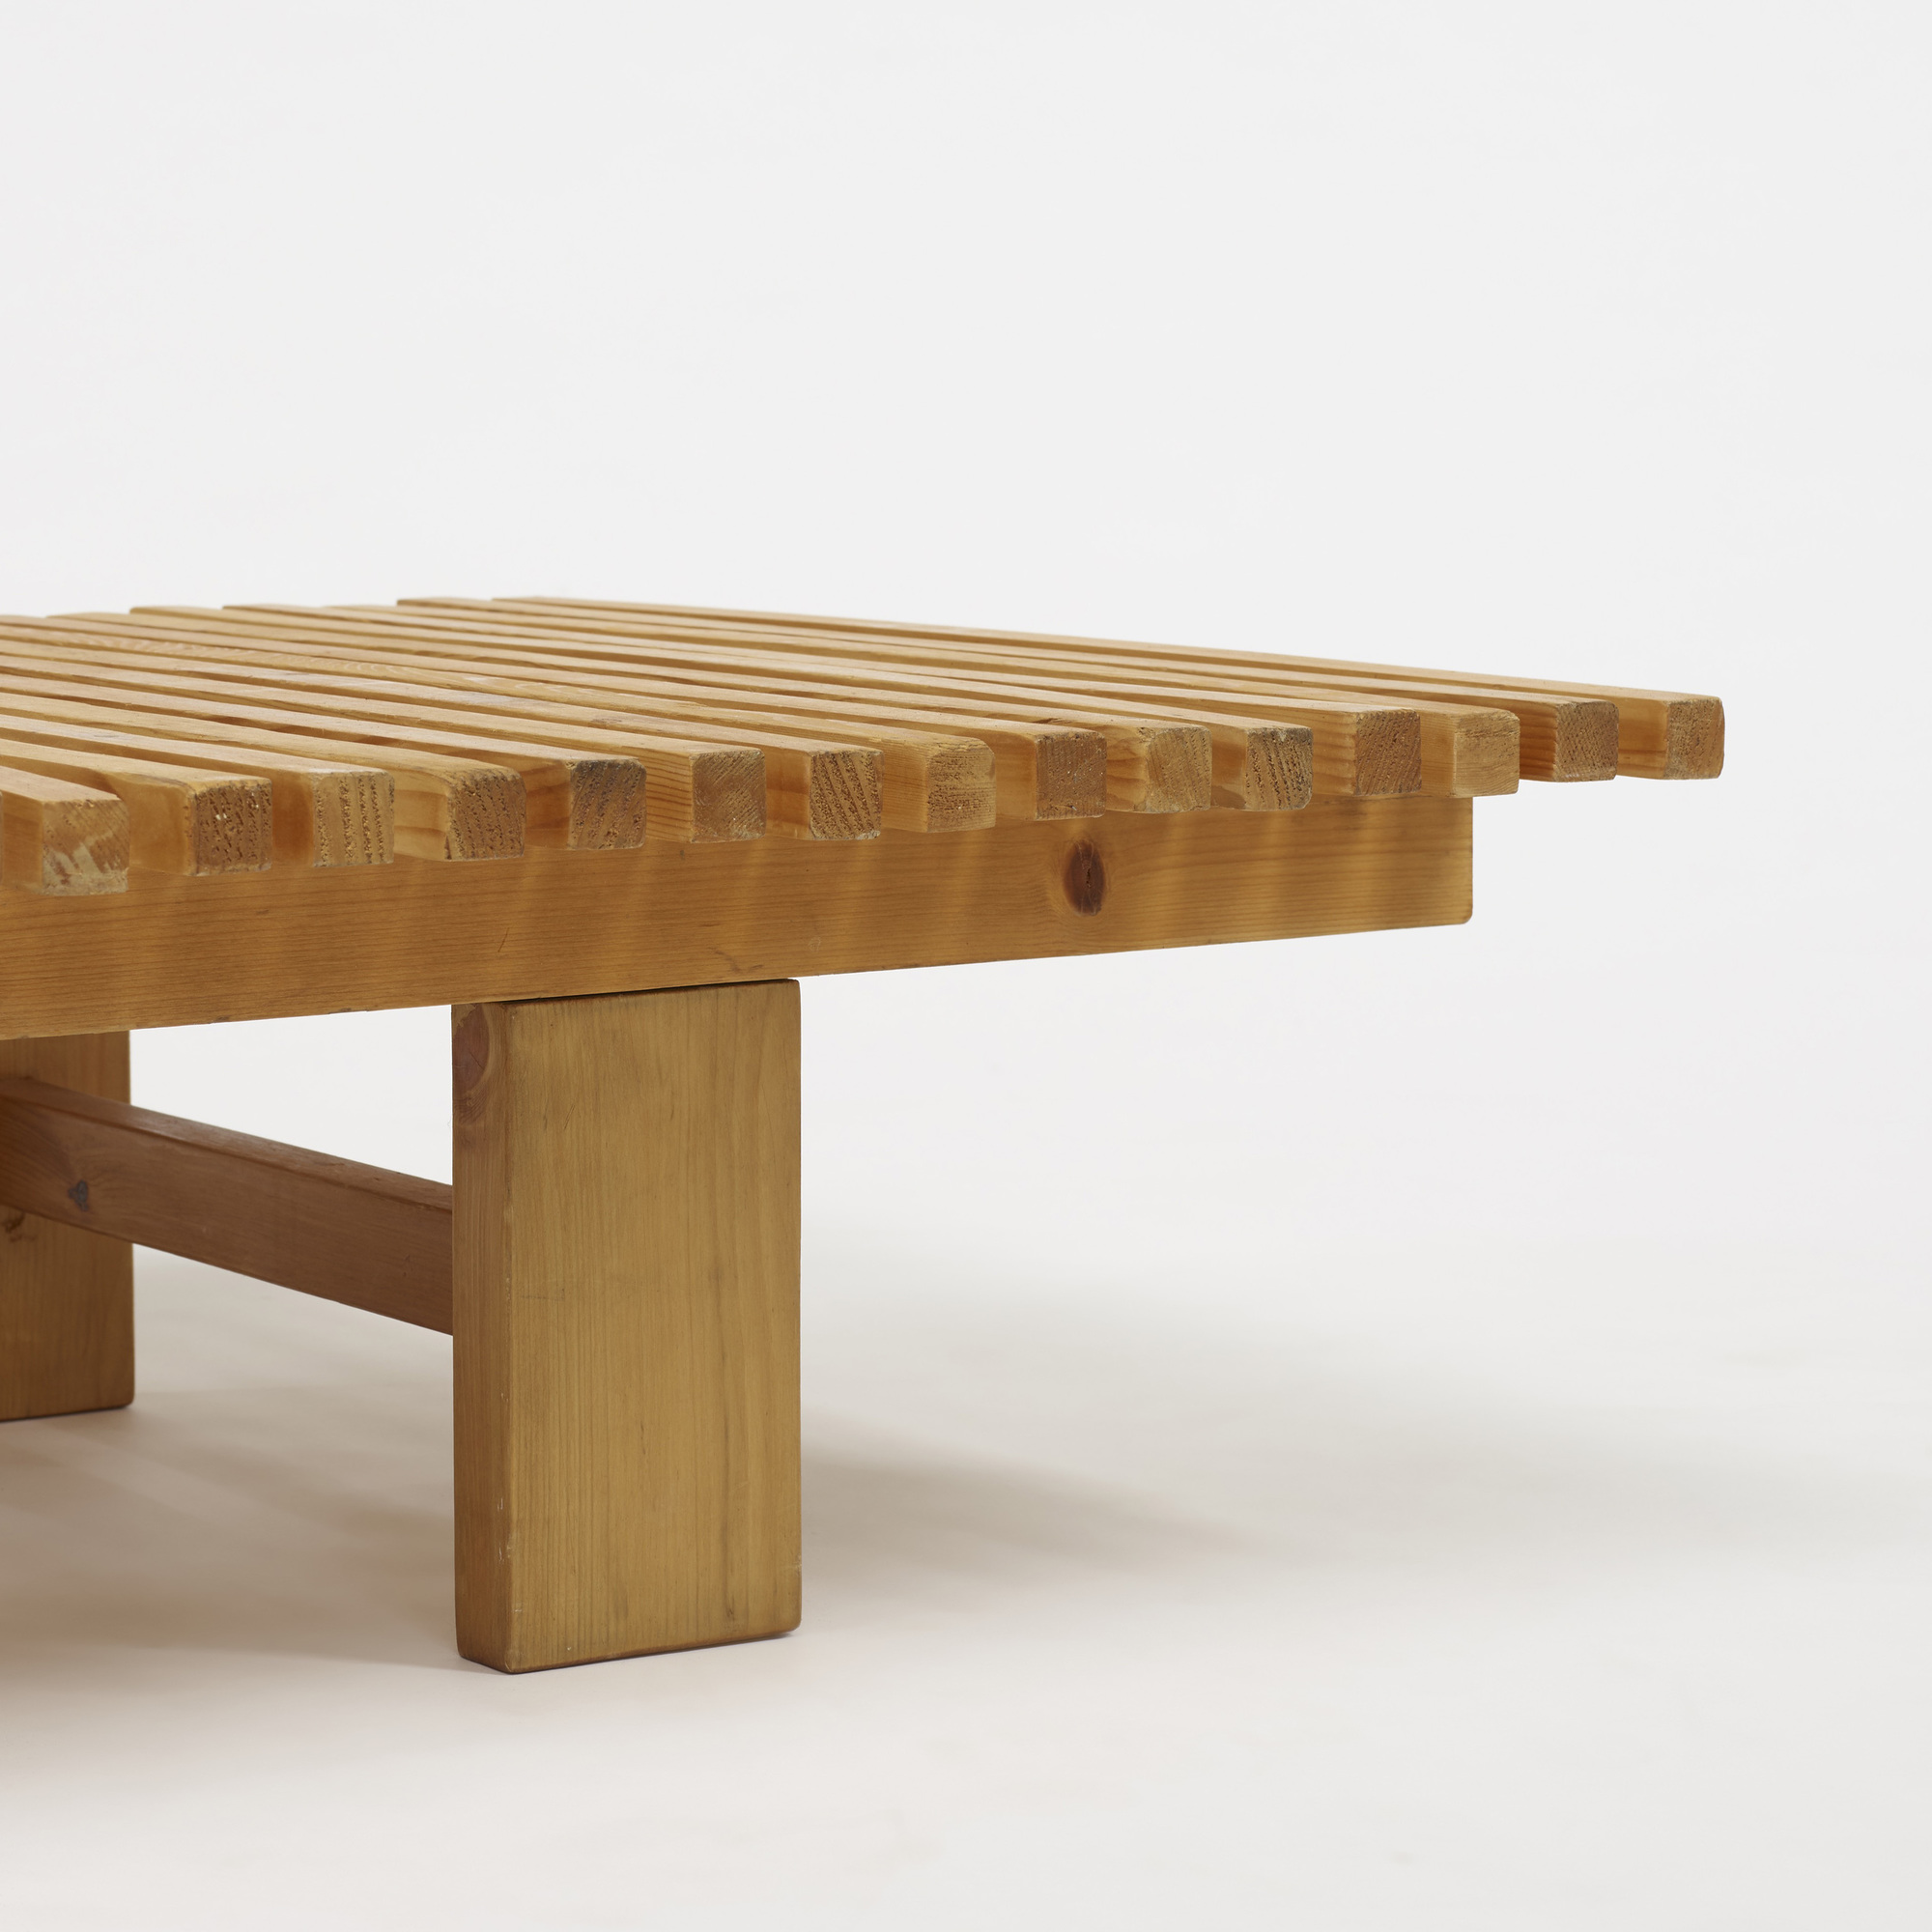 122: Charlotte Perriand / bench from Les Arcs, Savoie (4 of 4)